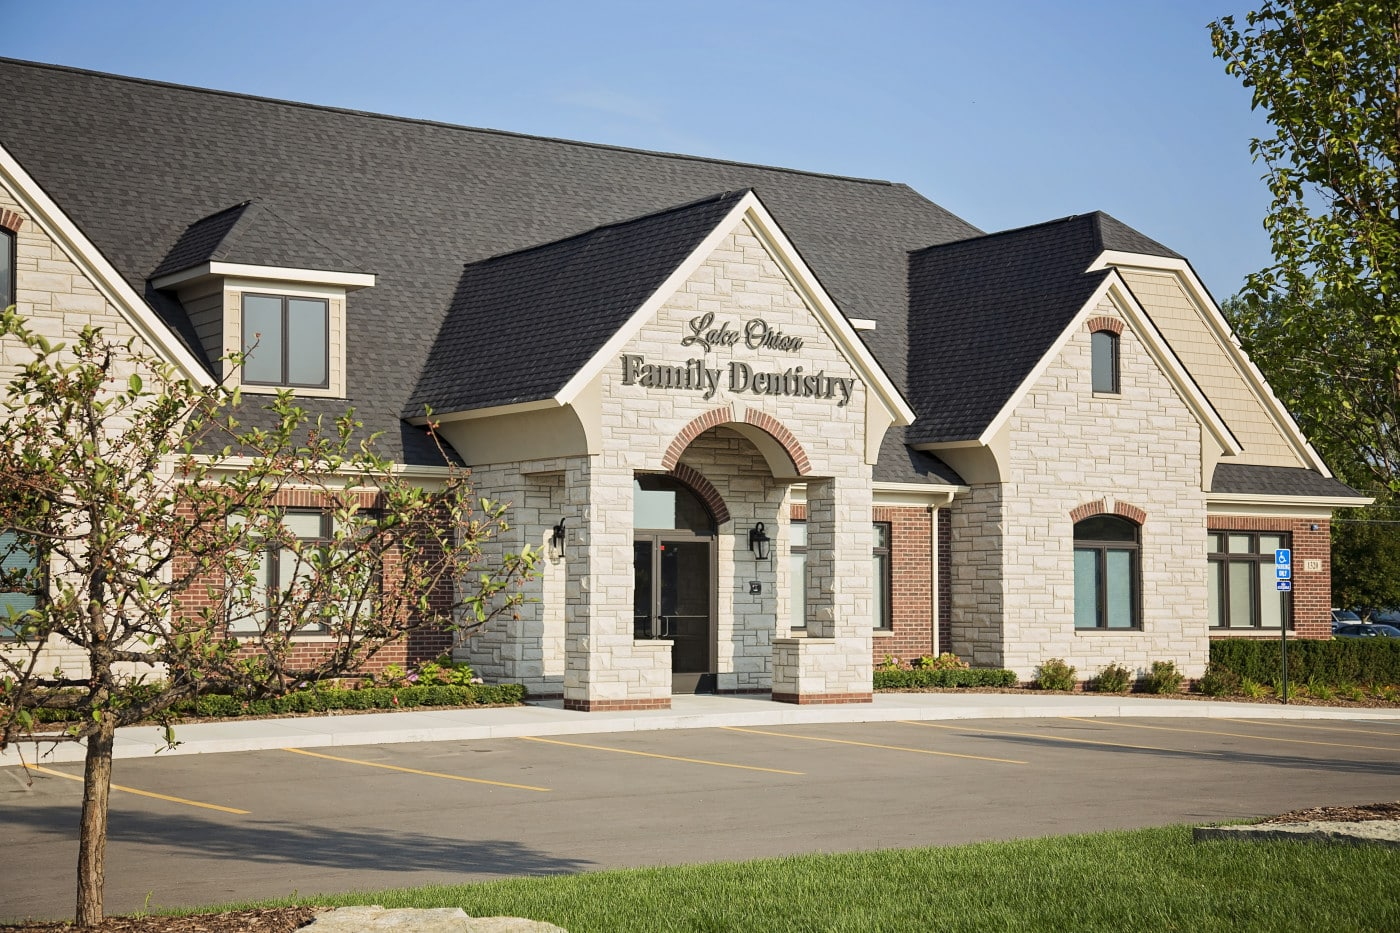 """I am very happy with my visit at Lake Orion Family Dentistry. The staff was very friendly and professional. They even took a little extra time to explore and explain all the options for what I needed. I will definitely be recommending them to all on my friends and Co workers that are looking for dental care."" ~ Gerrit"